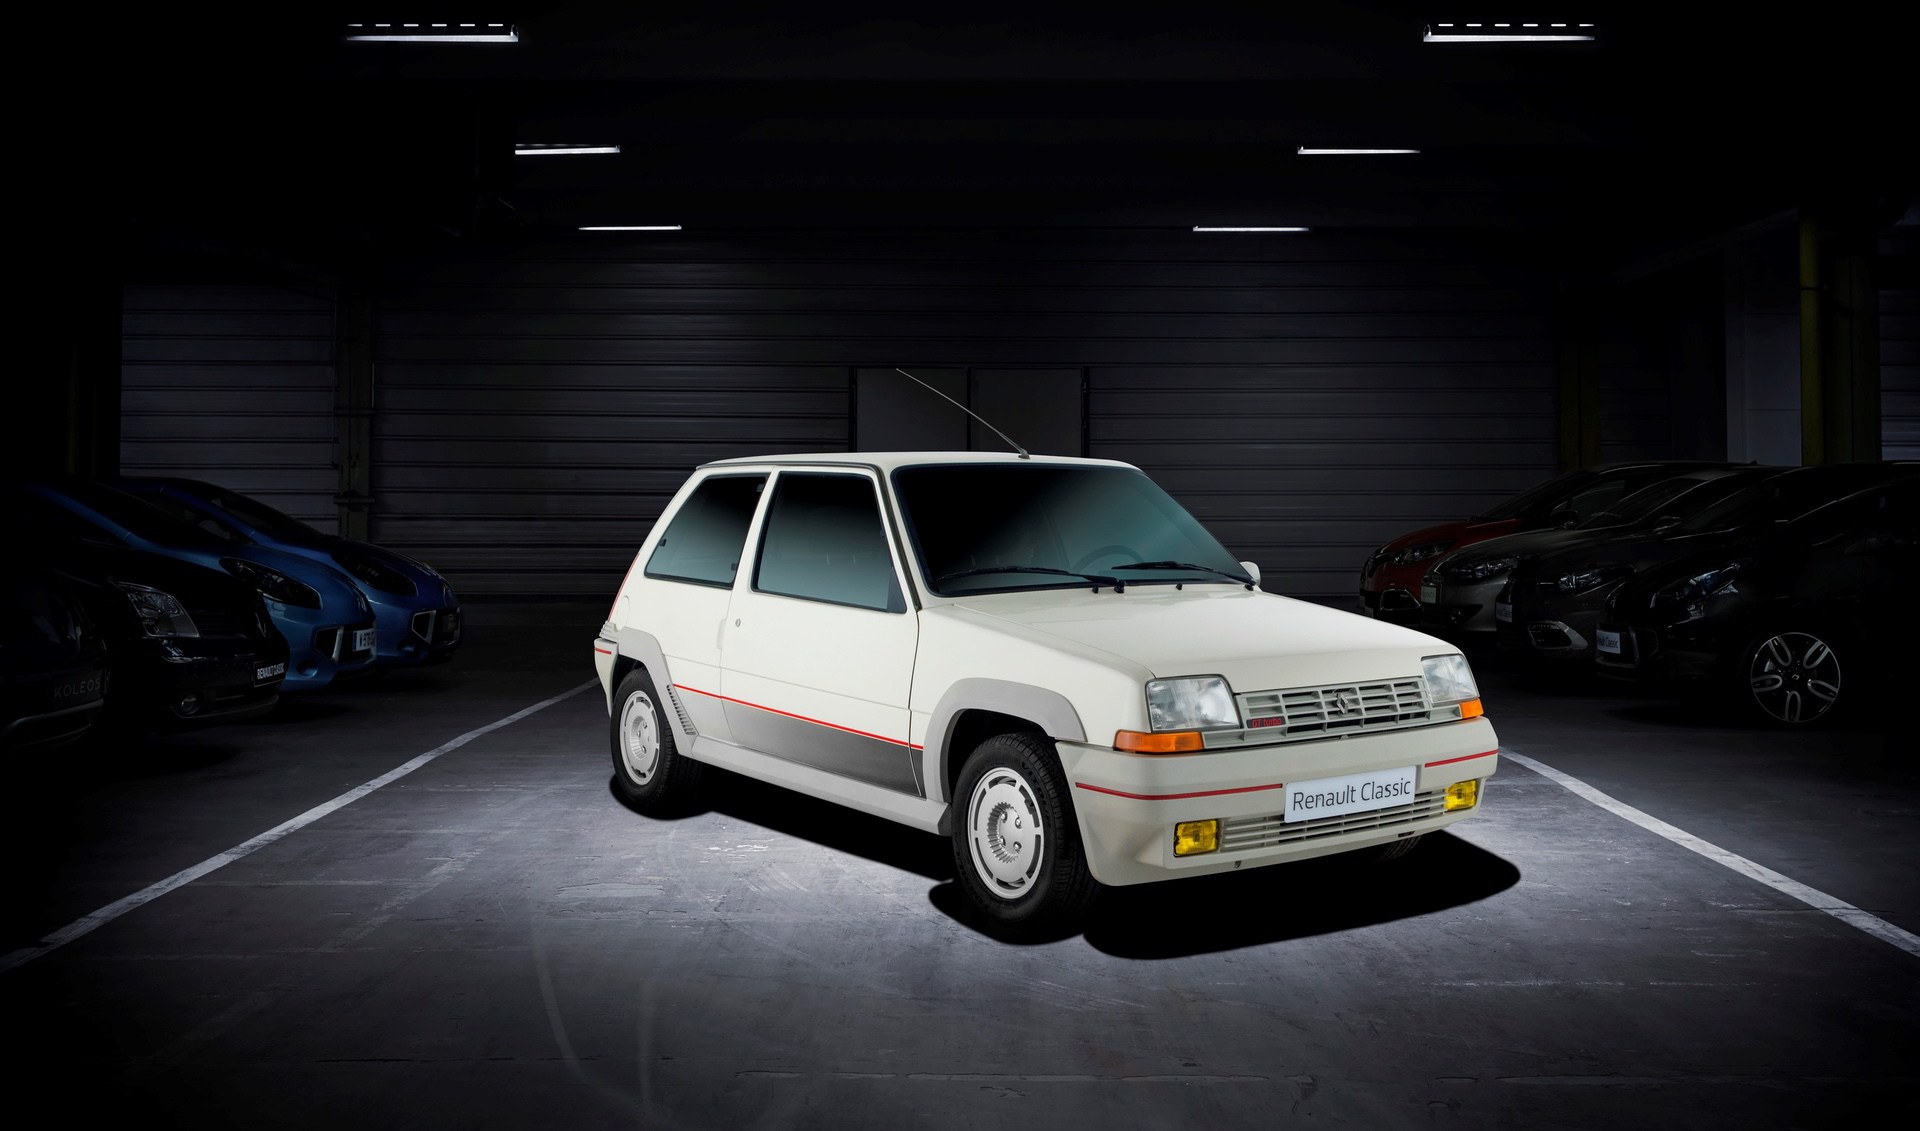 1985 - Renault 5 GT Turbo